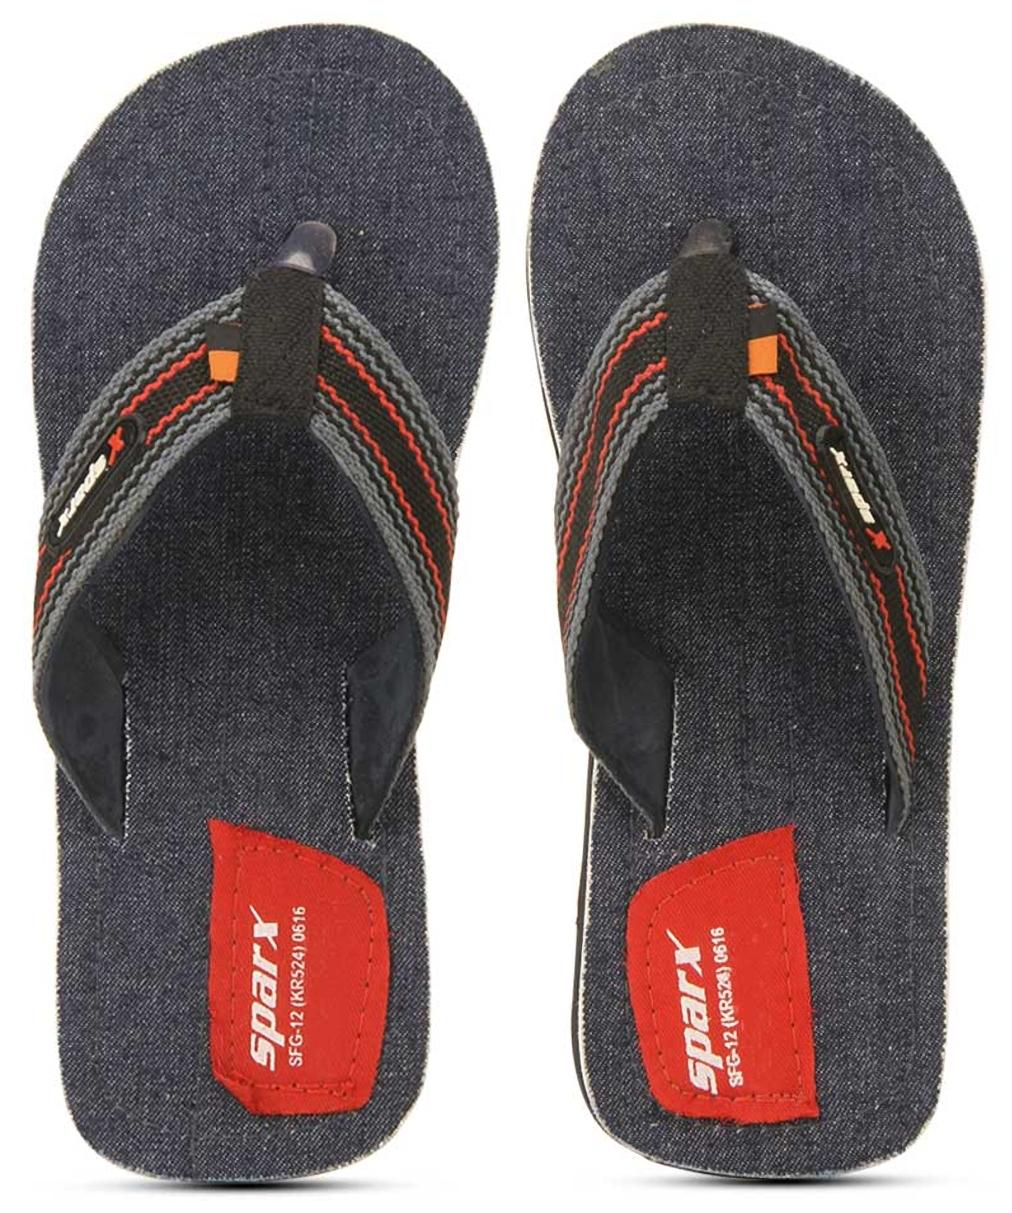 a68dd696d Home Men s Fashion Footwear Slippers   Flip Flops.  https   assetscdn1.paytm.com images catalog product